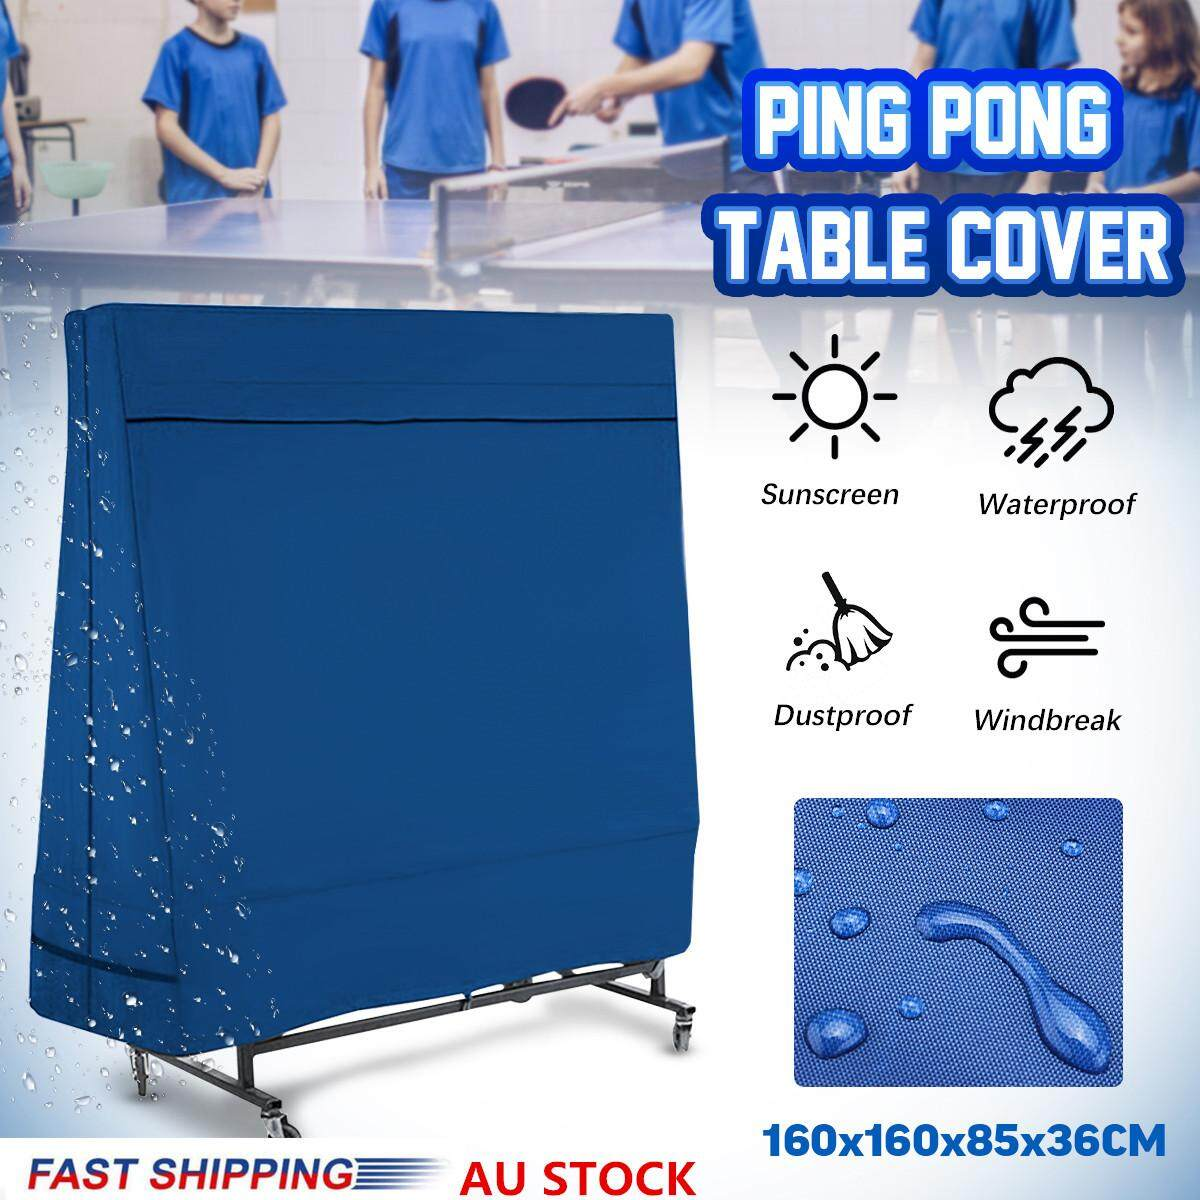 Waterproof Indoor/Outdoor Table Tennis Cover Pin Pong Table Protective Sheet